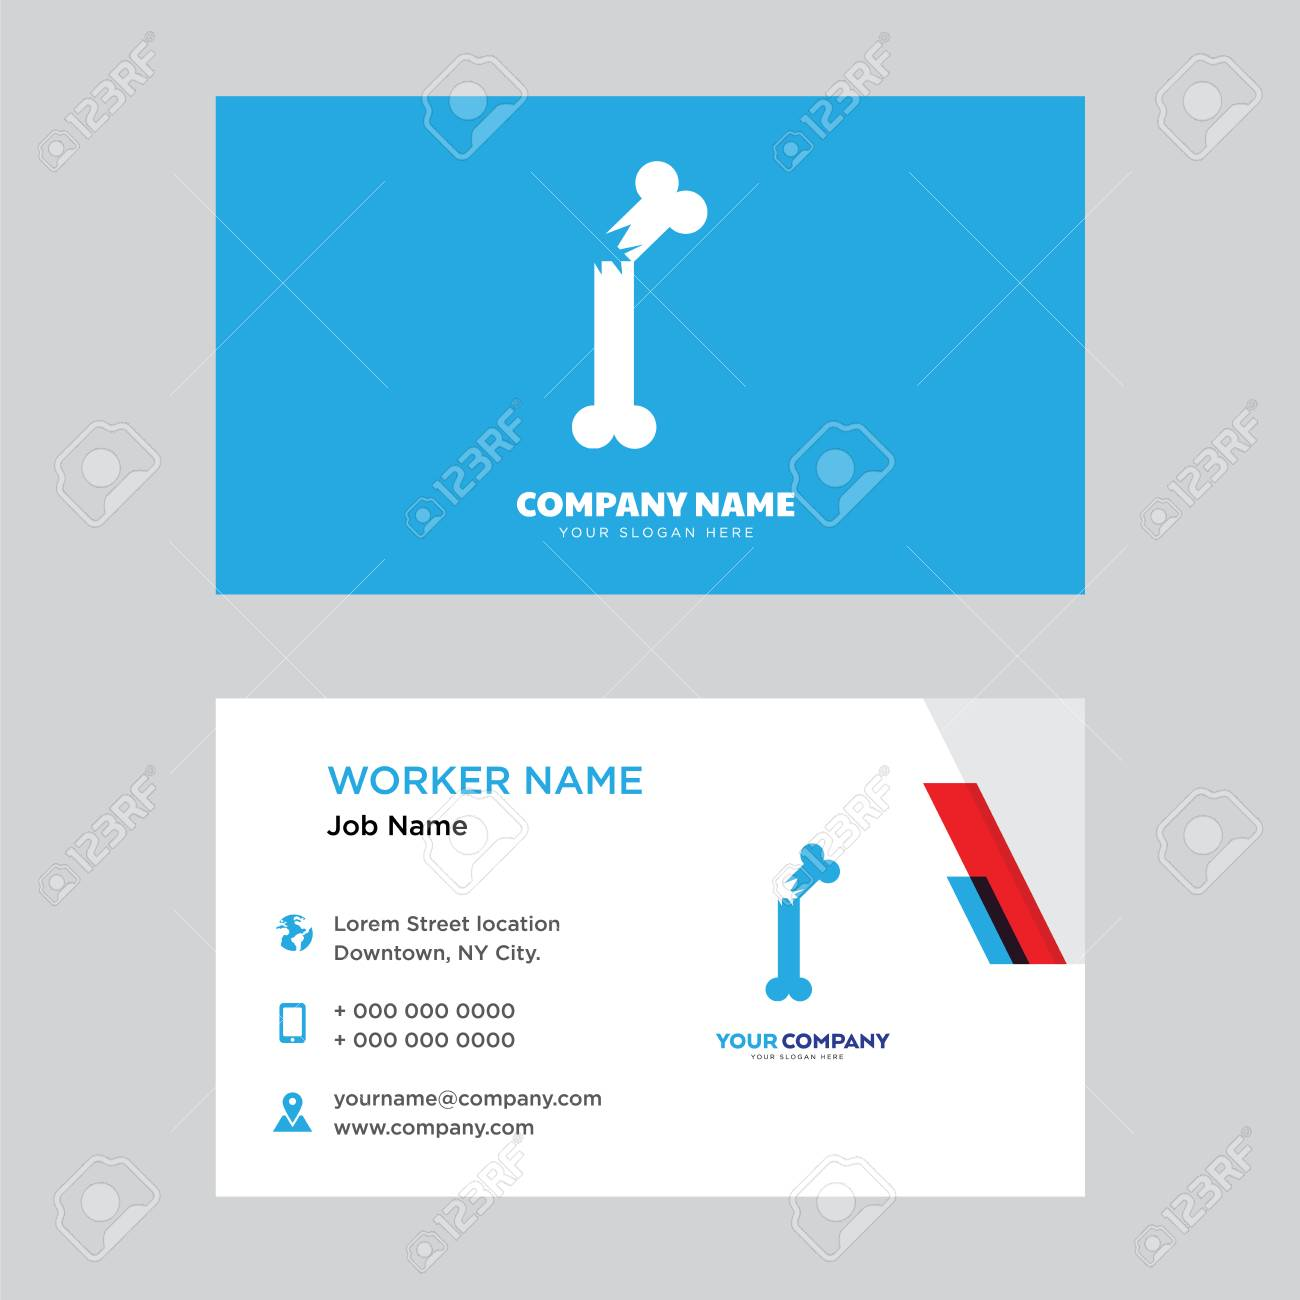 broken bone business card design template visiting for your company